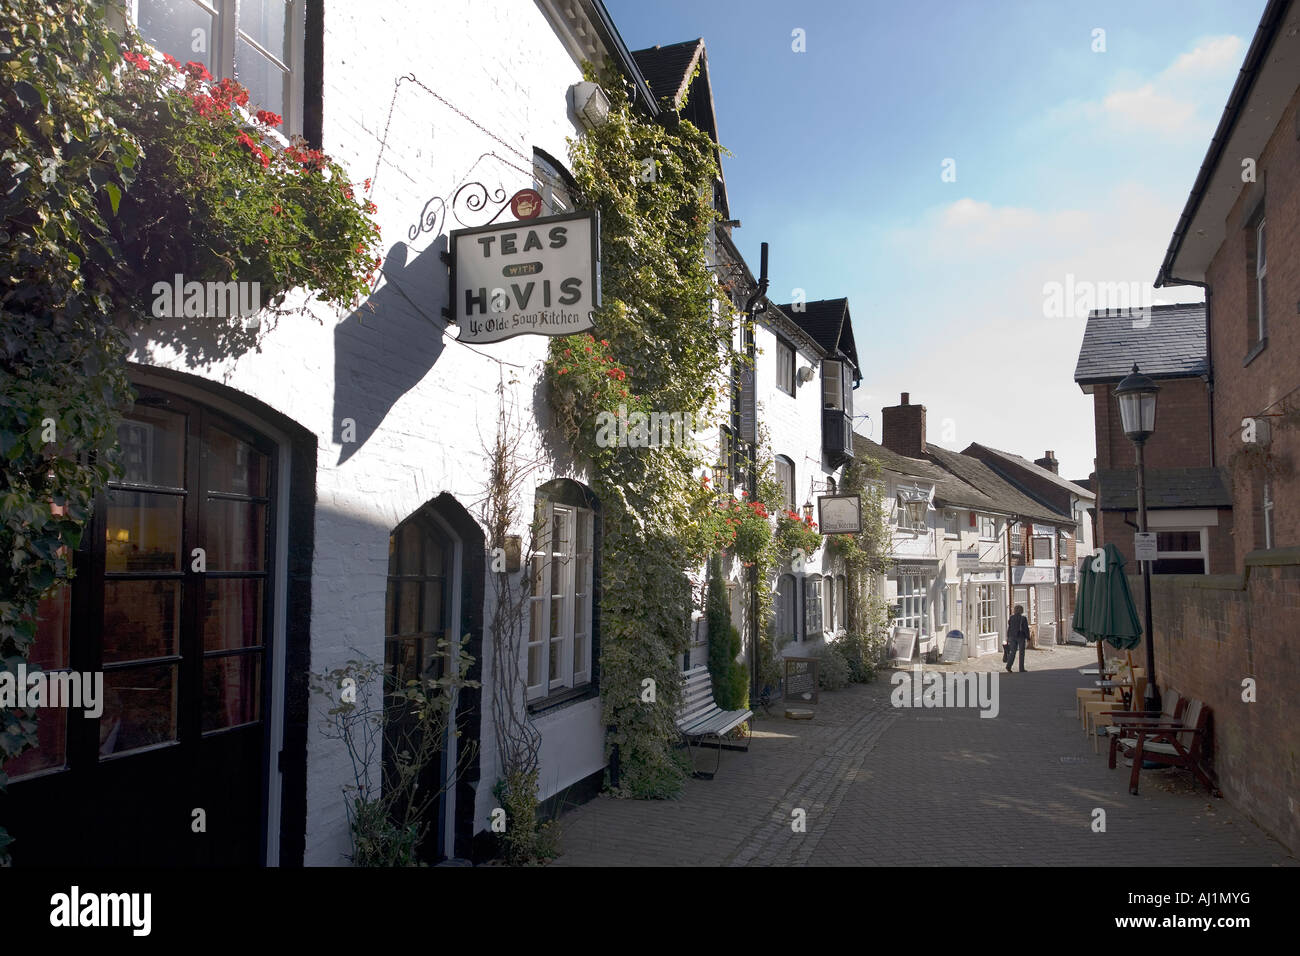 Church Lane with Ye Olde Soup Kitchen, Stafford, Staffordshire, England - Stock Image